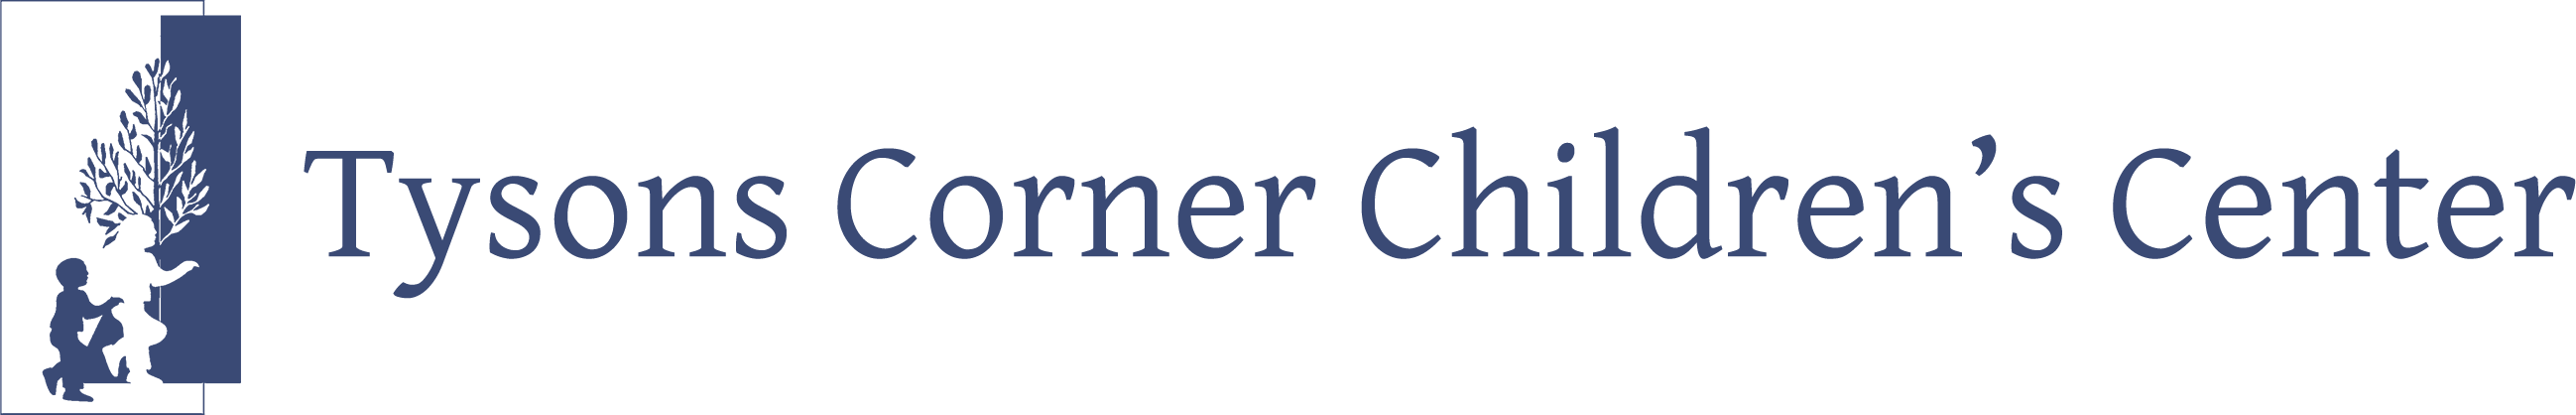 Tysons Corner Children's Center logo